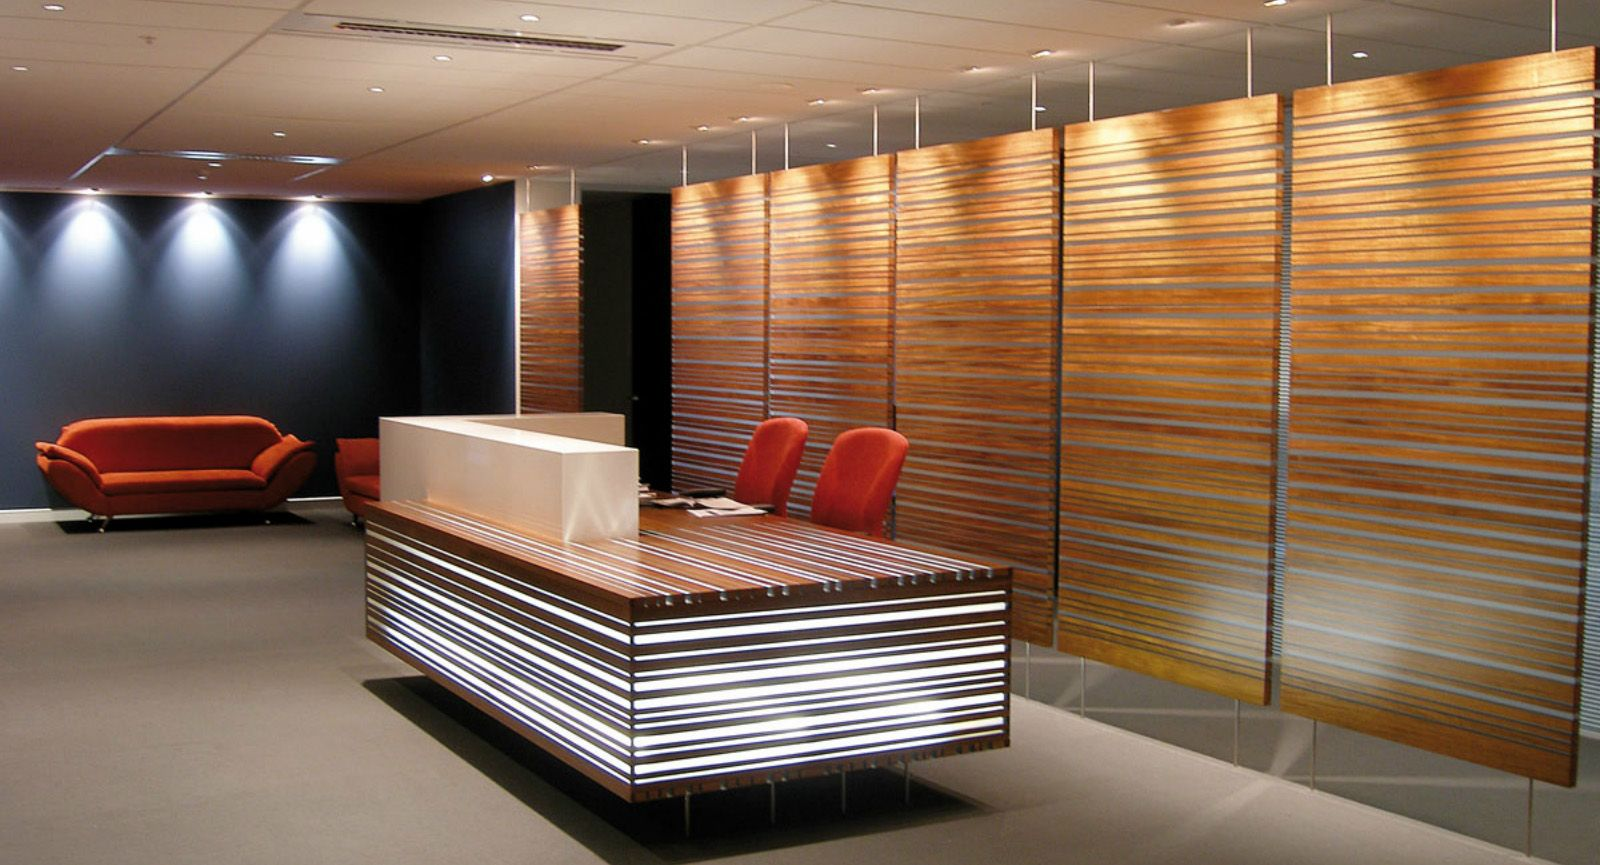 Wall Paneling Design dundees design Contemporary Panelling Interior Wood Wall Paneling Designs Probably Good Design Alternative For Your Design Suggestion